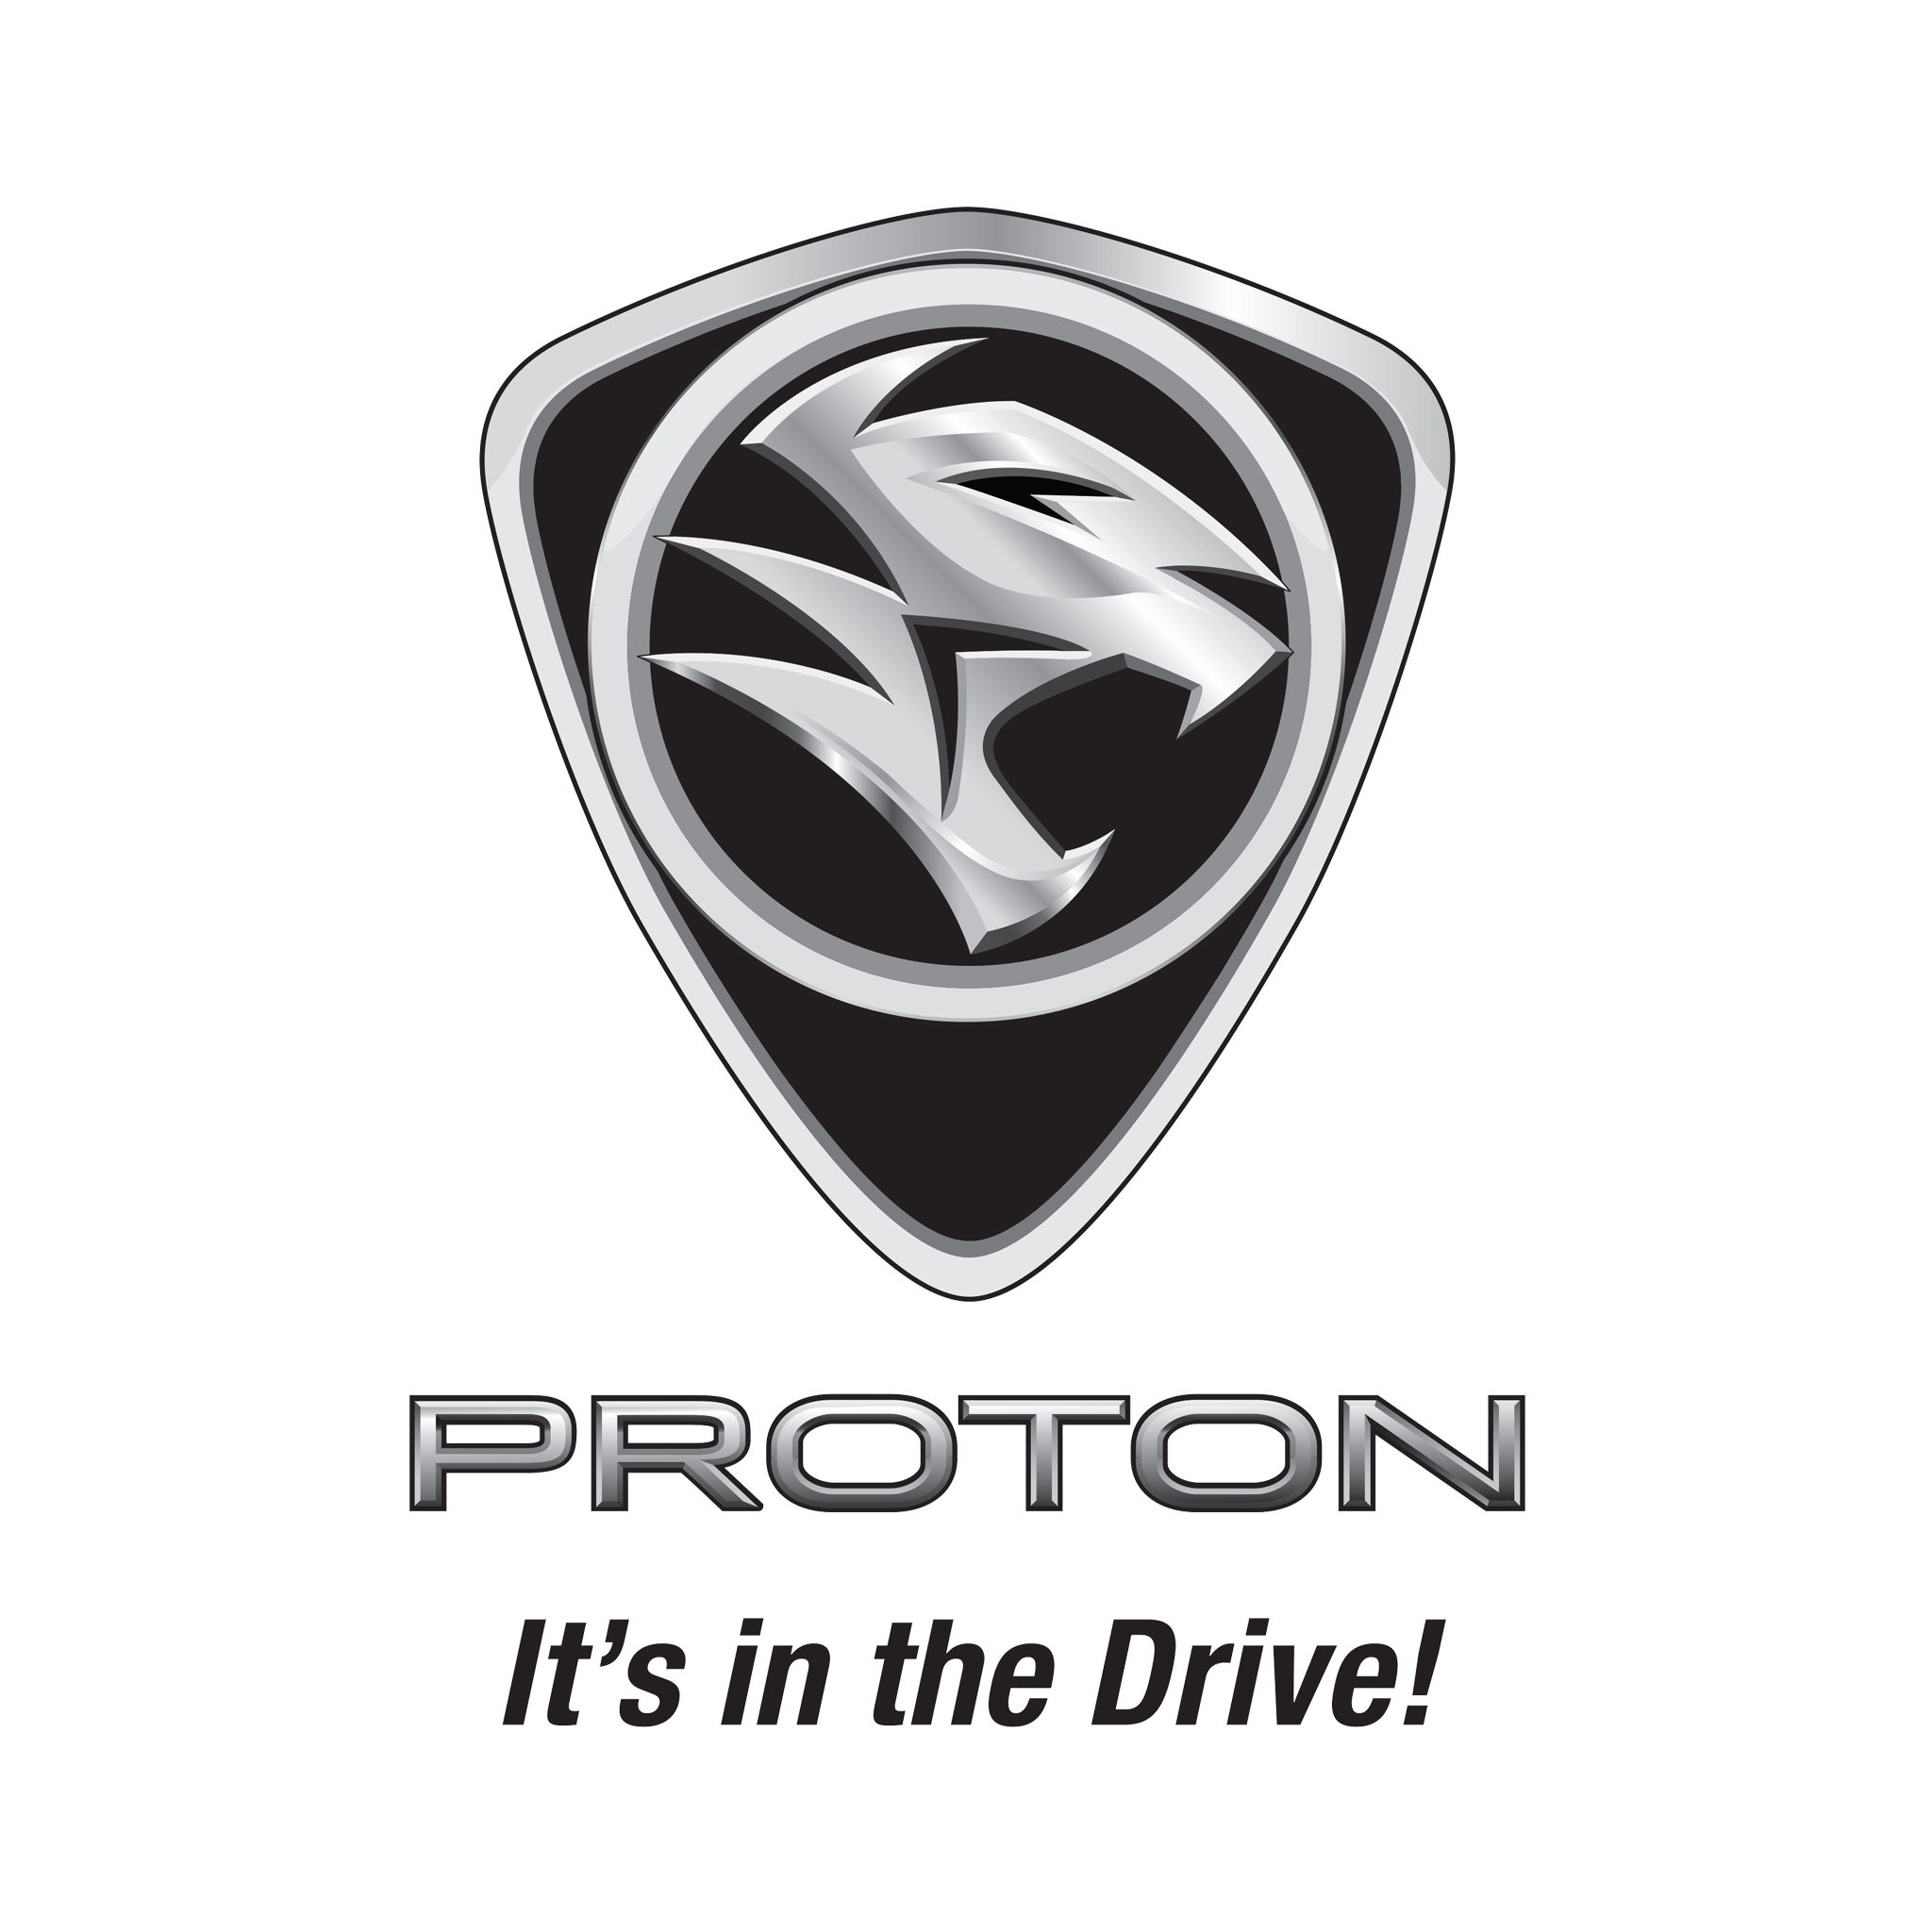 company overview of proton As a uk manufacturing business established since 1971, we have traded in many economic climates to during that time 2016 was a year of concern for many companies with the brexit vote and the uncertai.